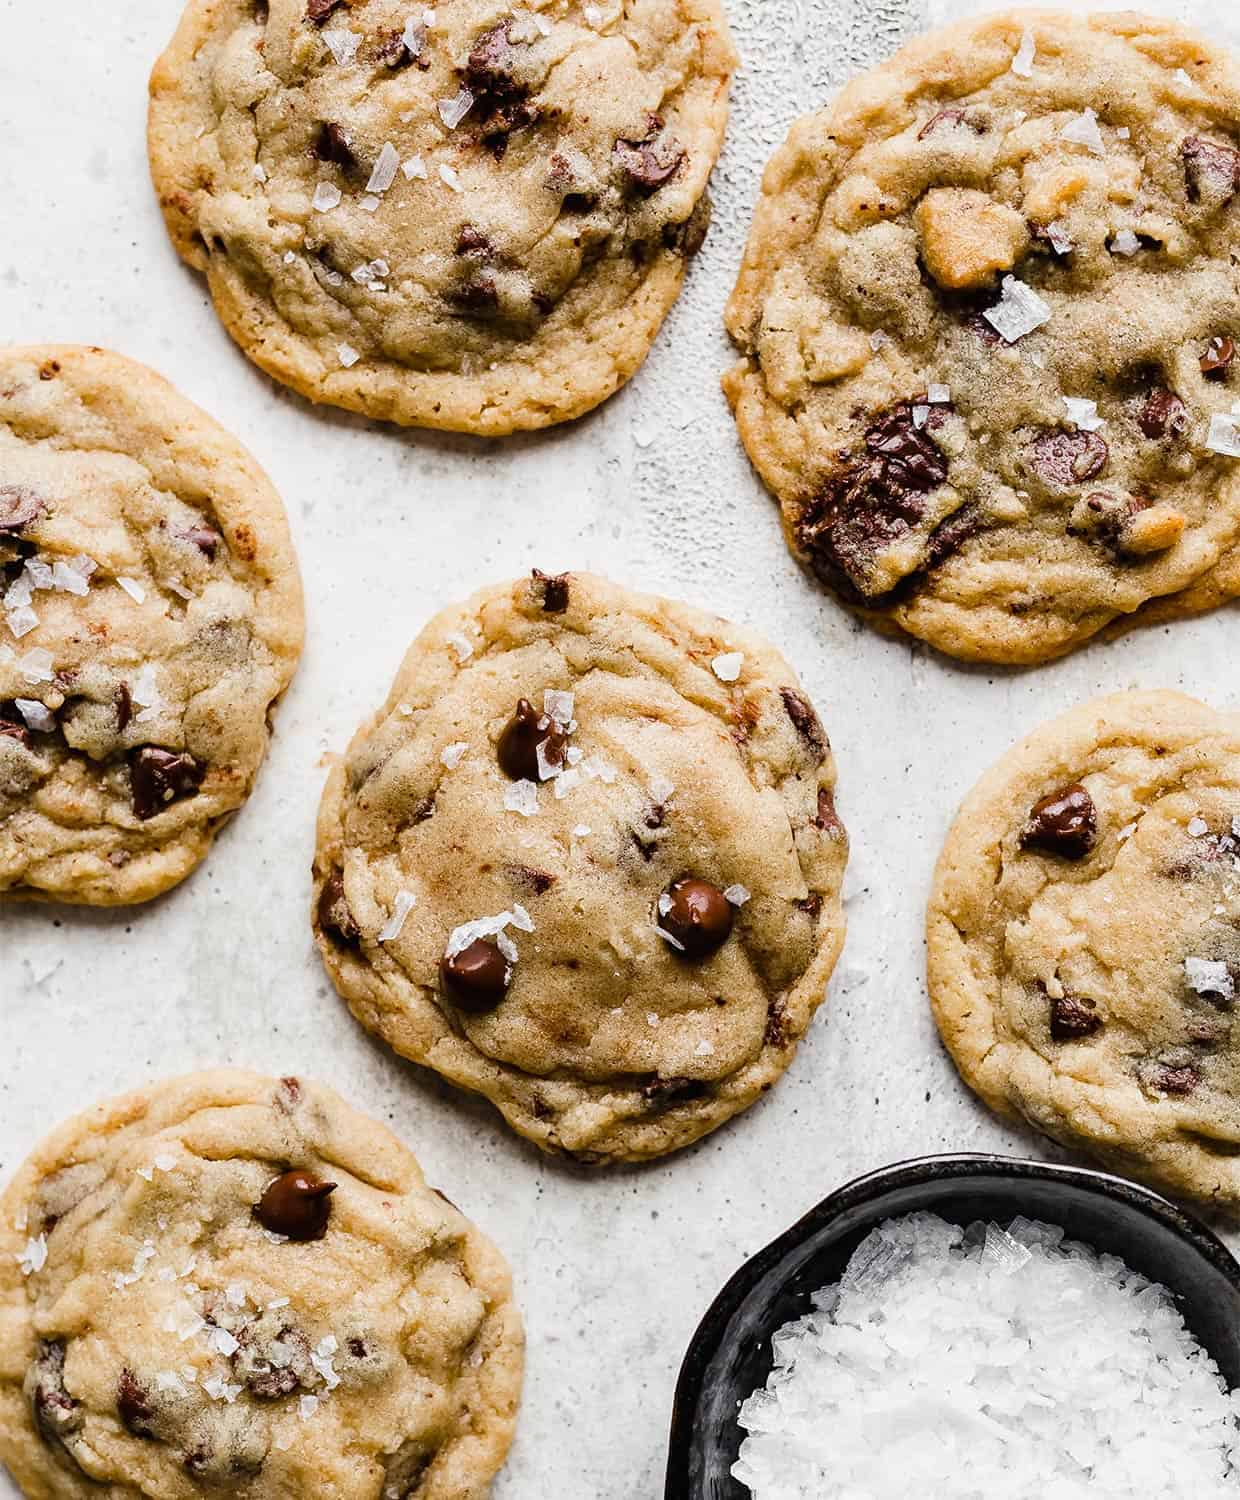 Chocolate Chip Cookies against a white background.